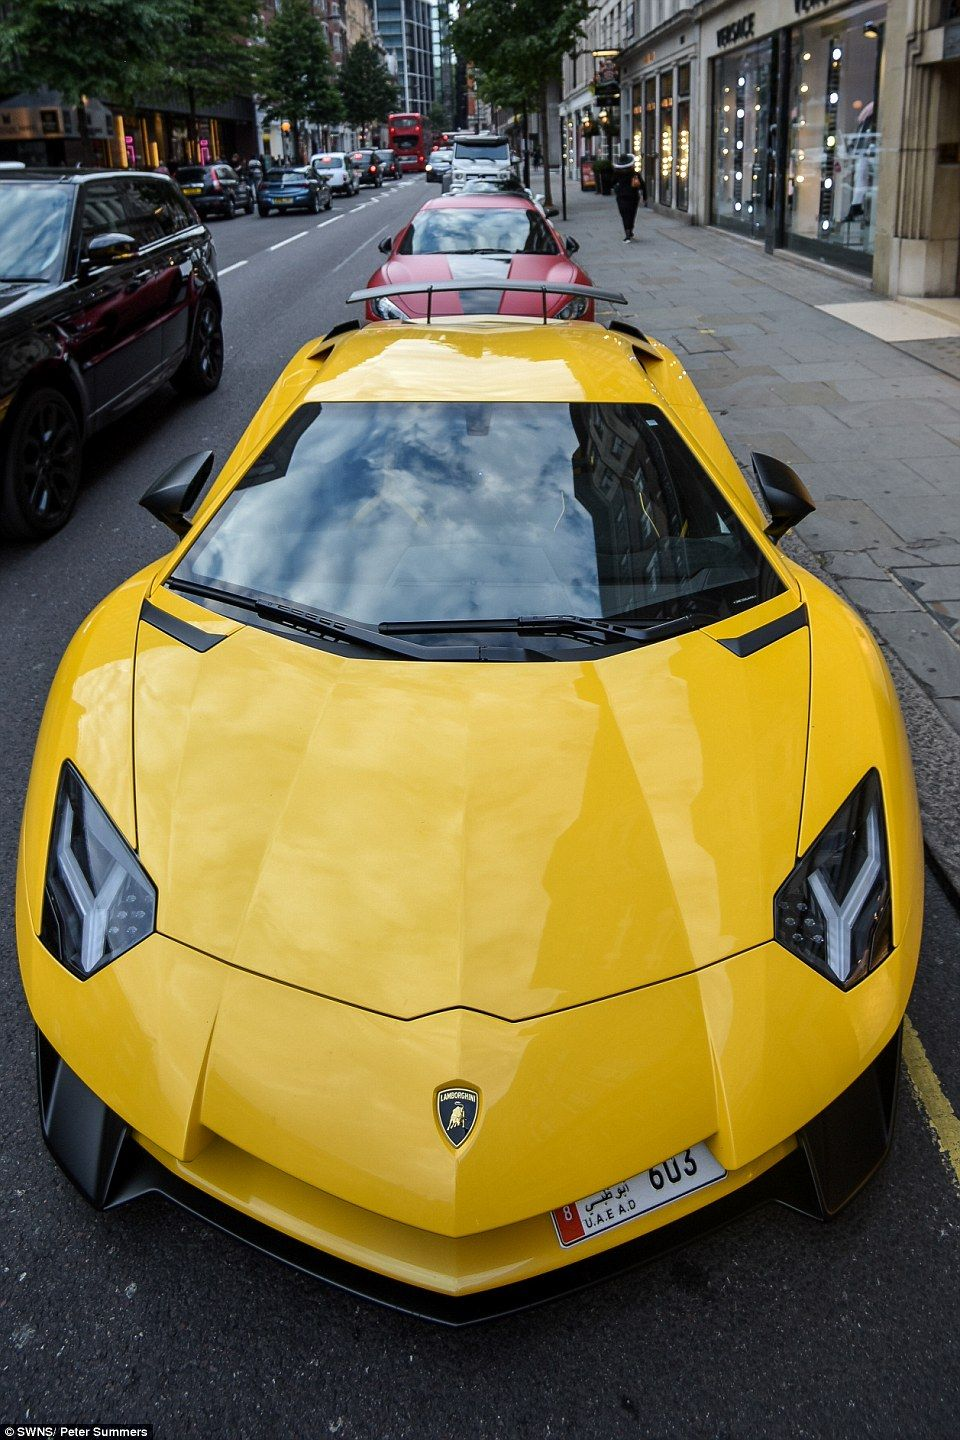 Arab Owned Sports Cars Lining The Streets Of London Cars Car - Make a cool car